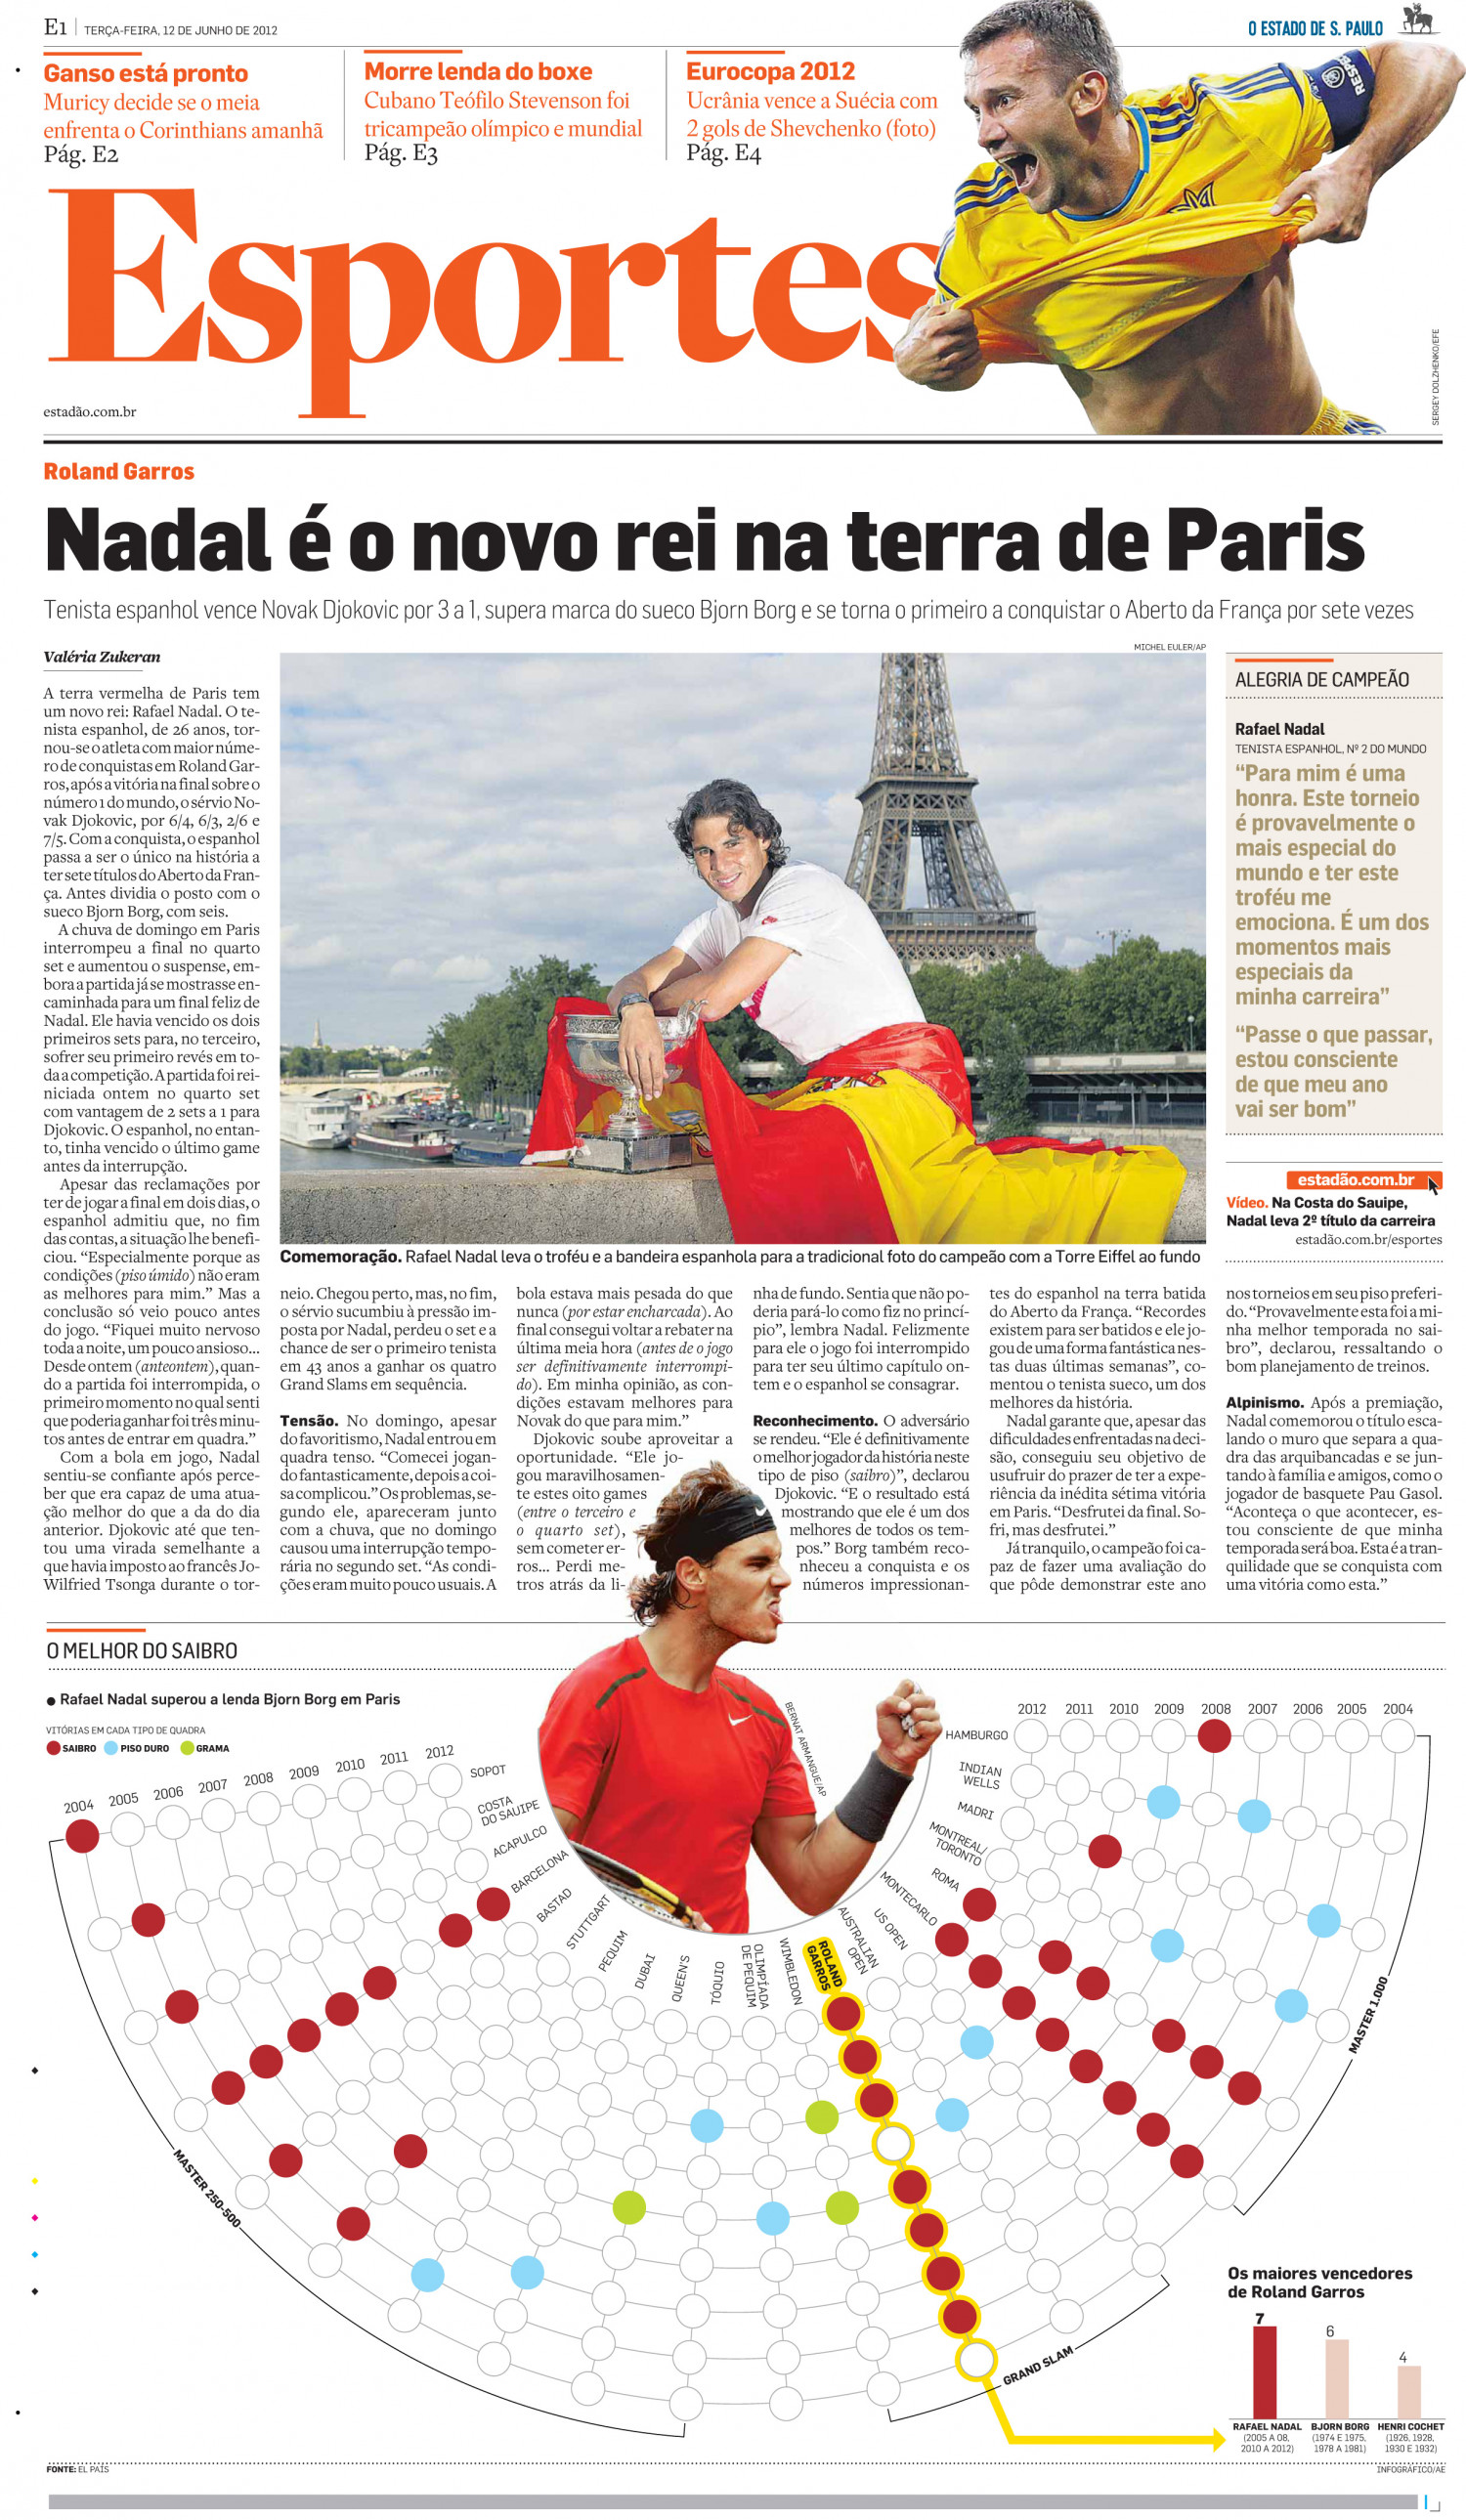 Nadal Infographic